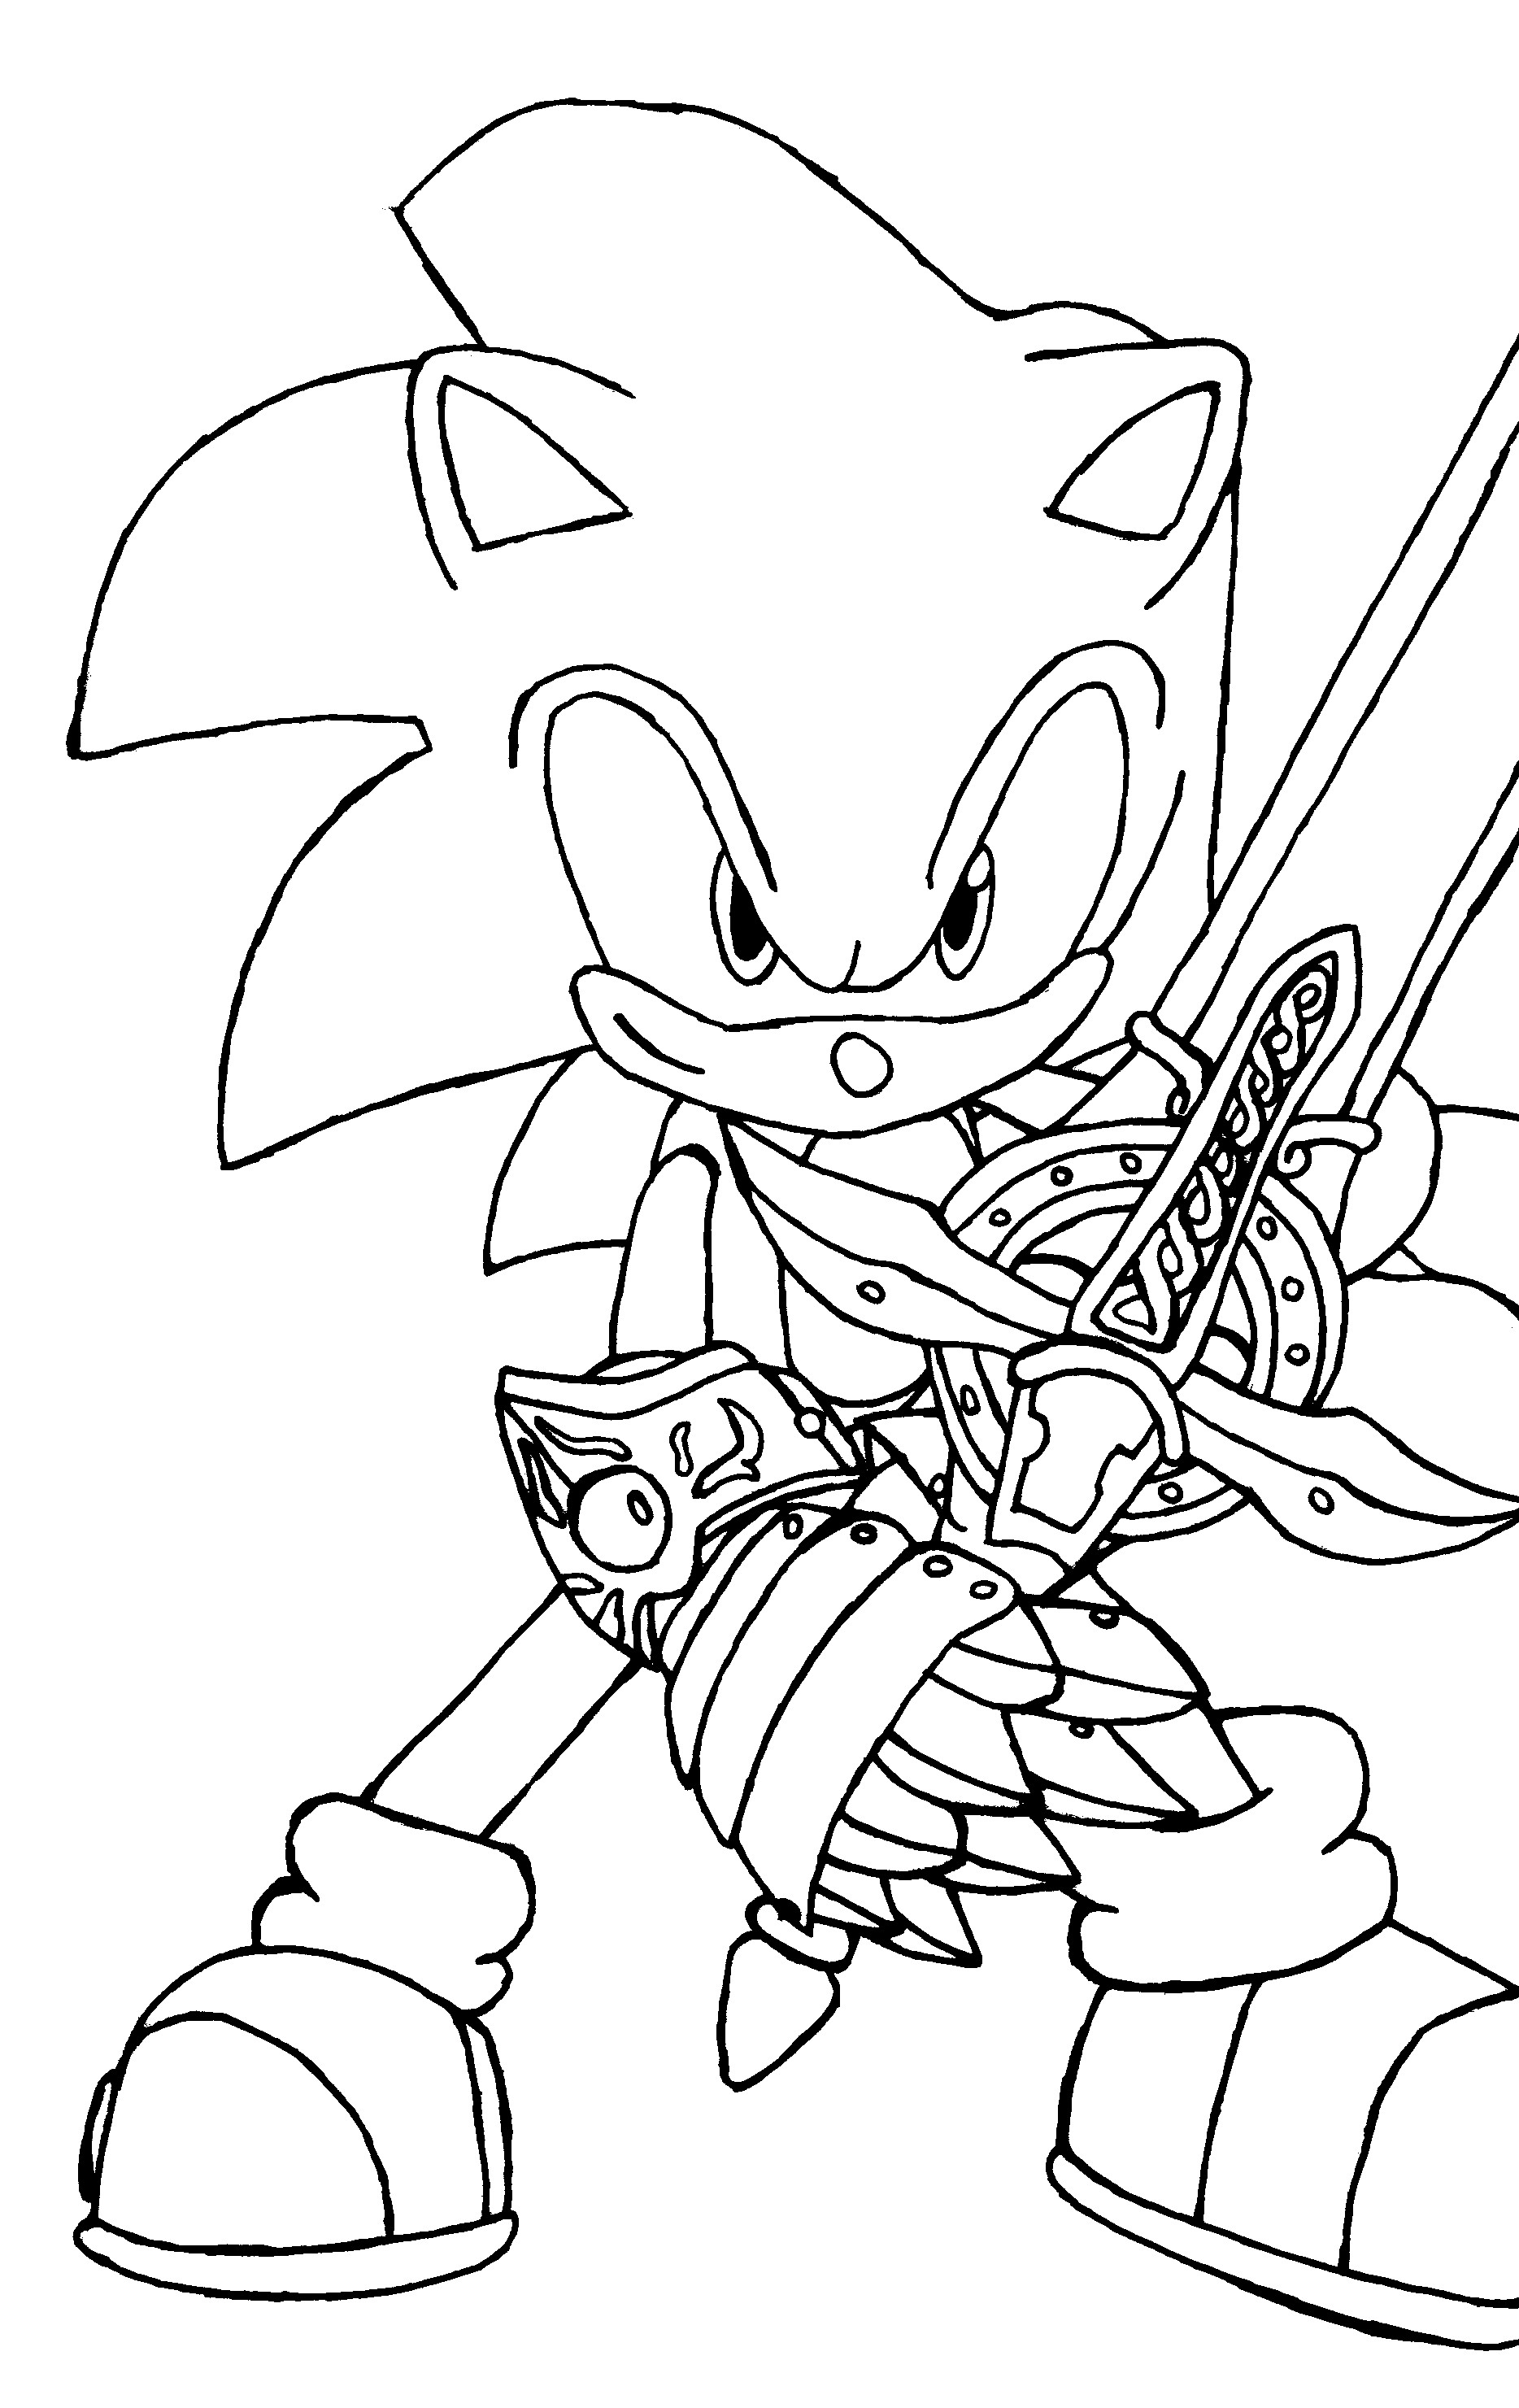 Kids coloring book pages free - Print Pictures Of Sonic Sonic The Hedgehog Coloring Pages Free Printable Download Coloring